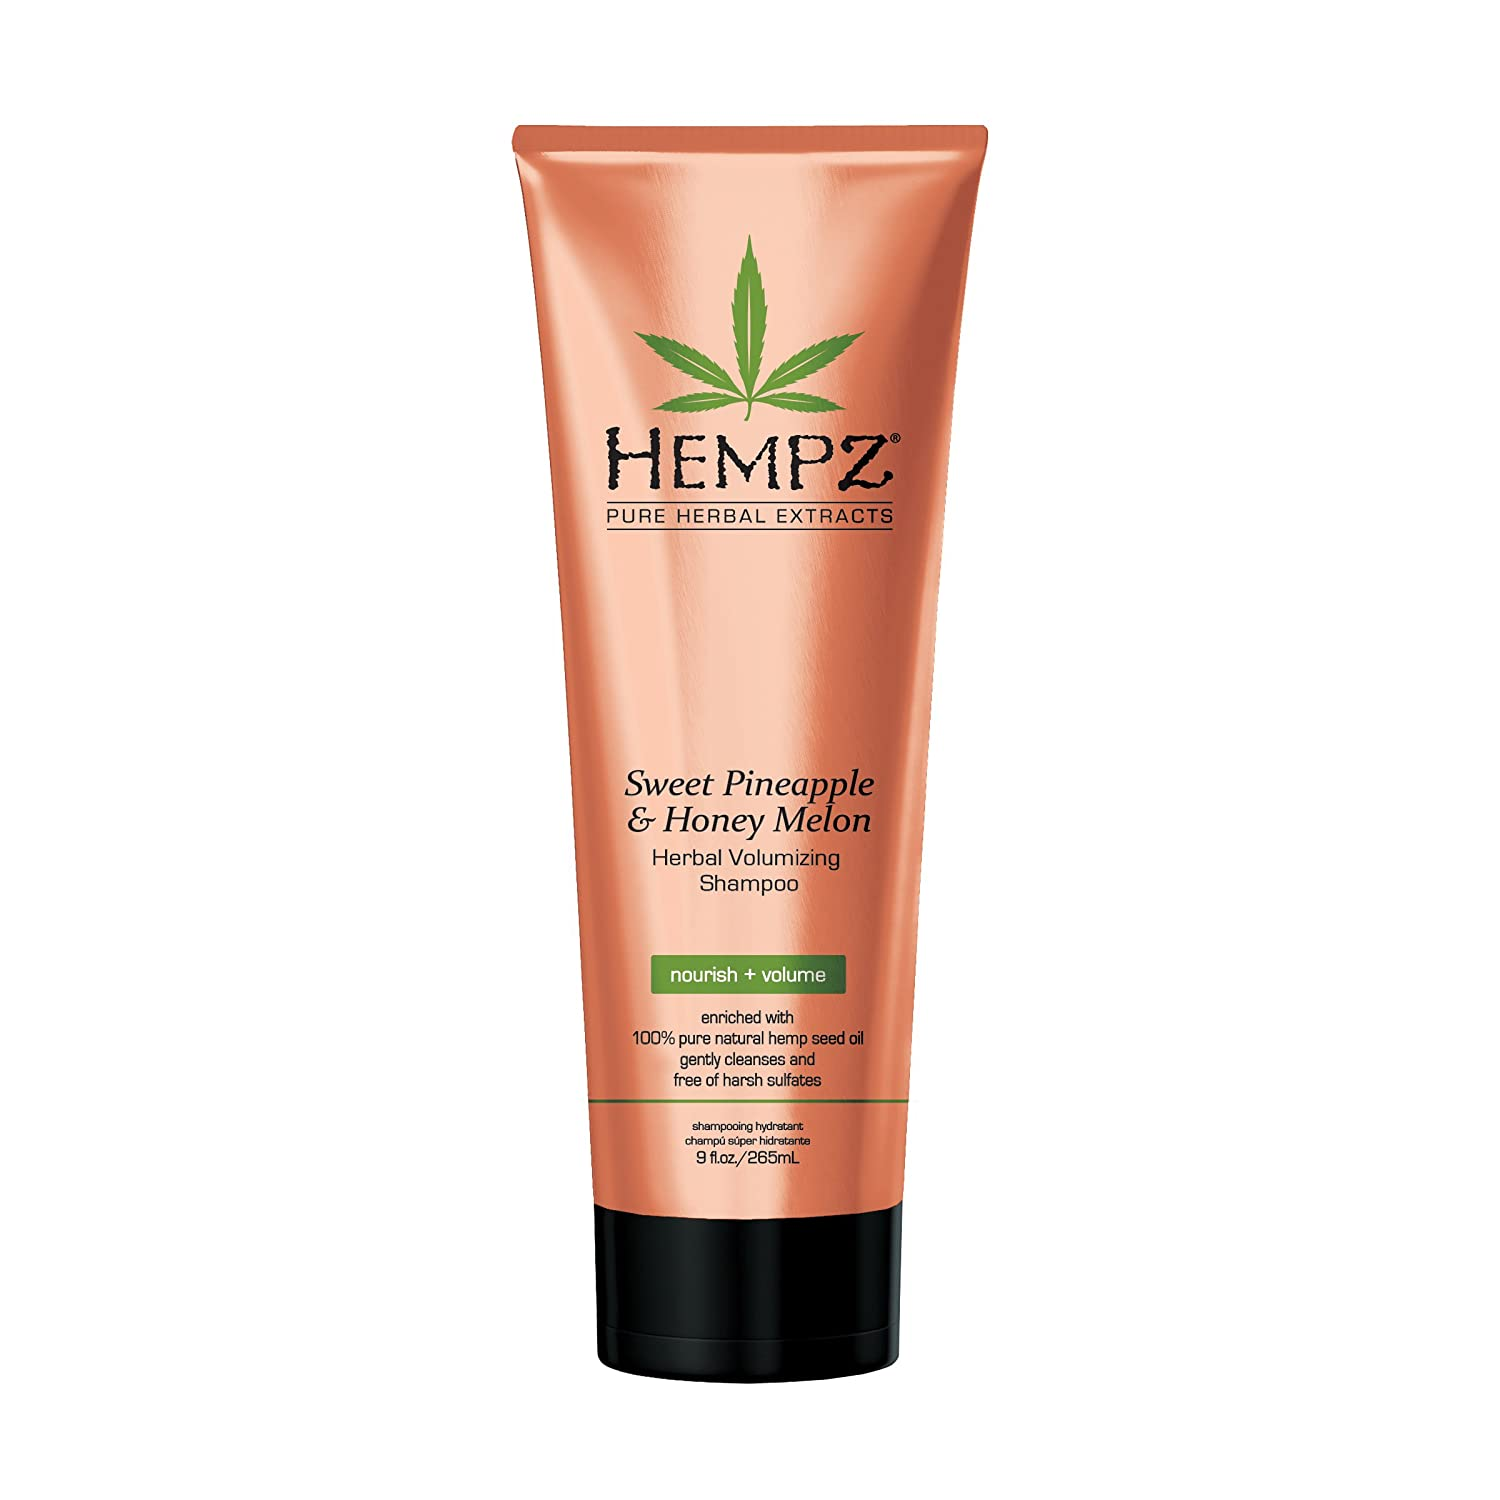 Hempz Sweet Pineapple and Honey Melon Herbal Volumizing Shampoo, 9 oz. - Natural Thickening and Repair Product for Women with Color Treated and Fine Hair, Restorative Shampoos with Volume